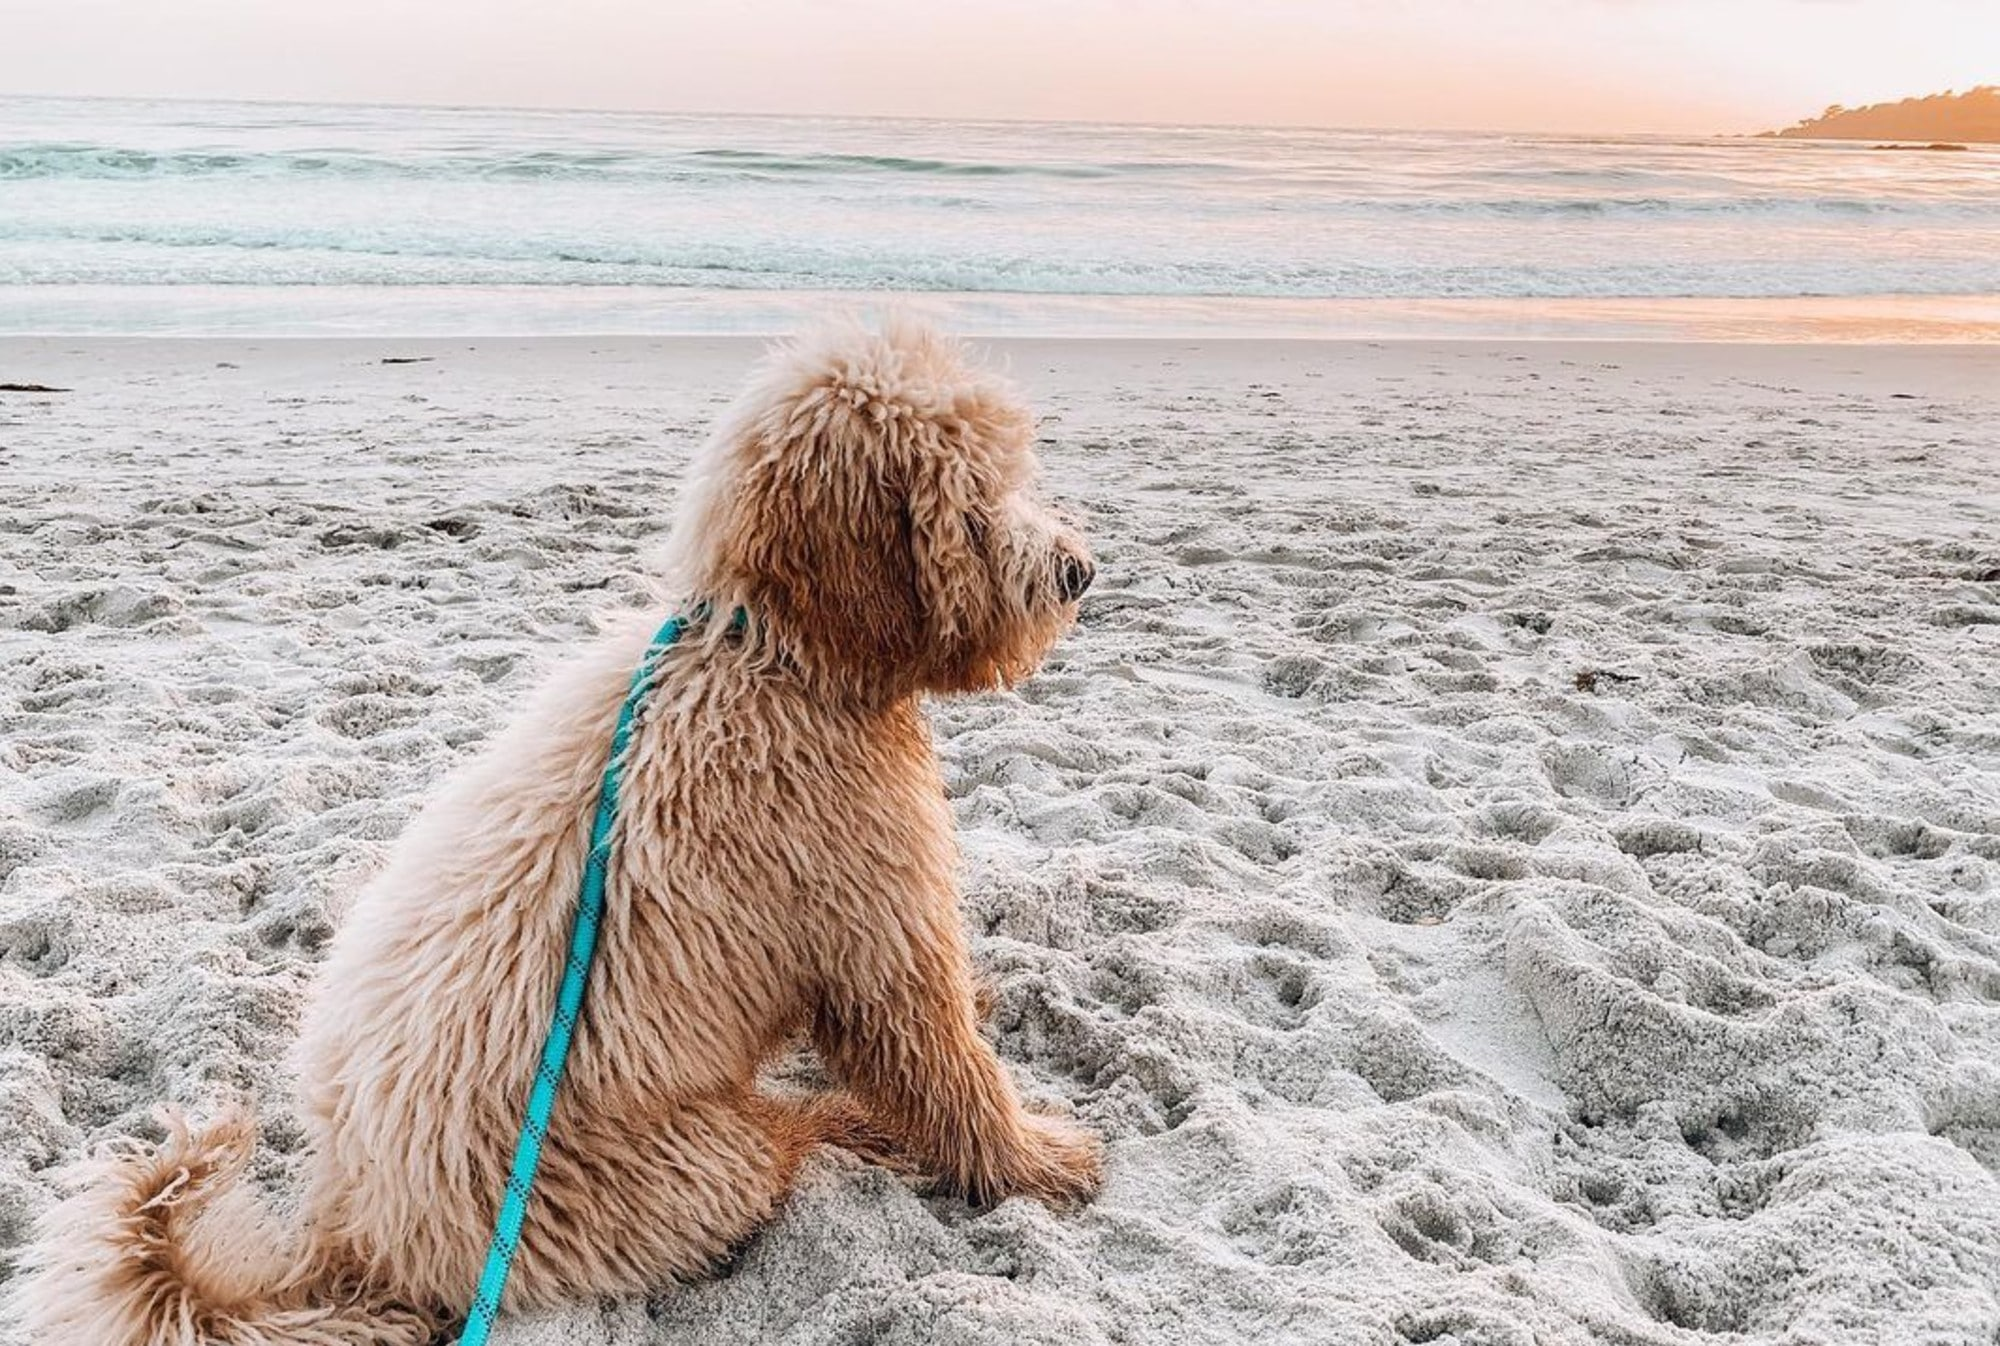 7 Dog-Friendly Beaches to Take Your Pup to Cool Off This Summer